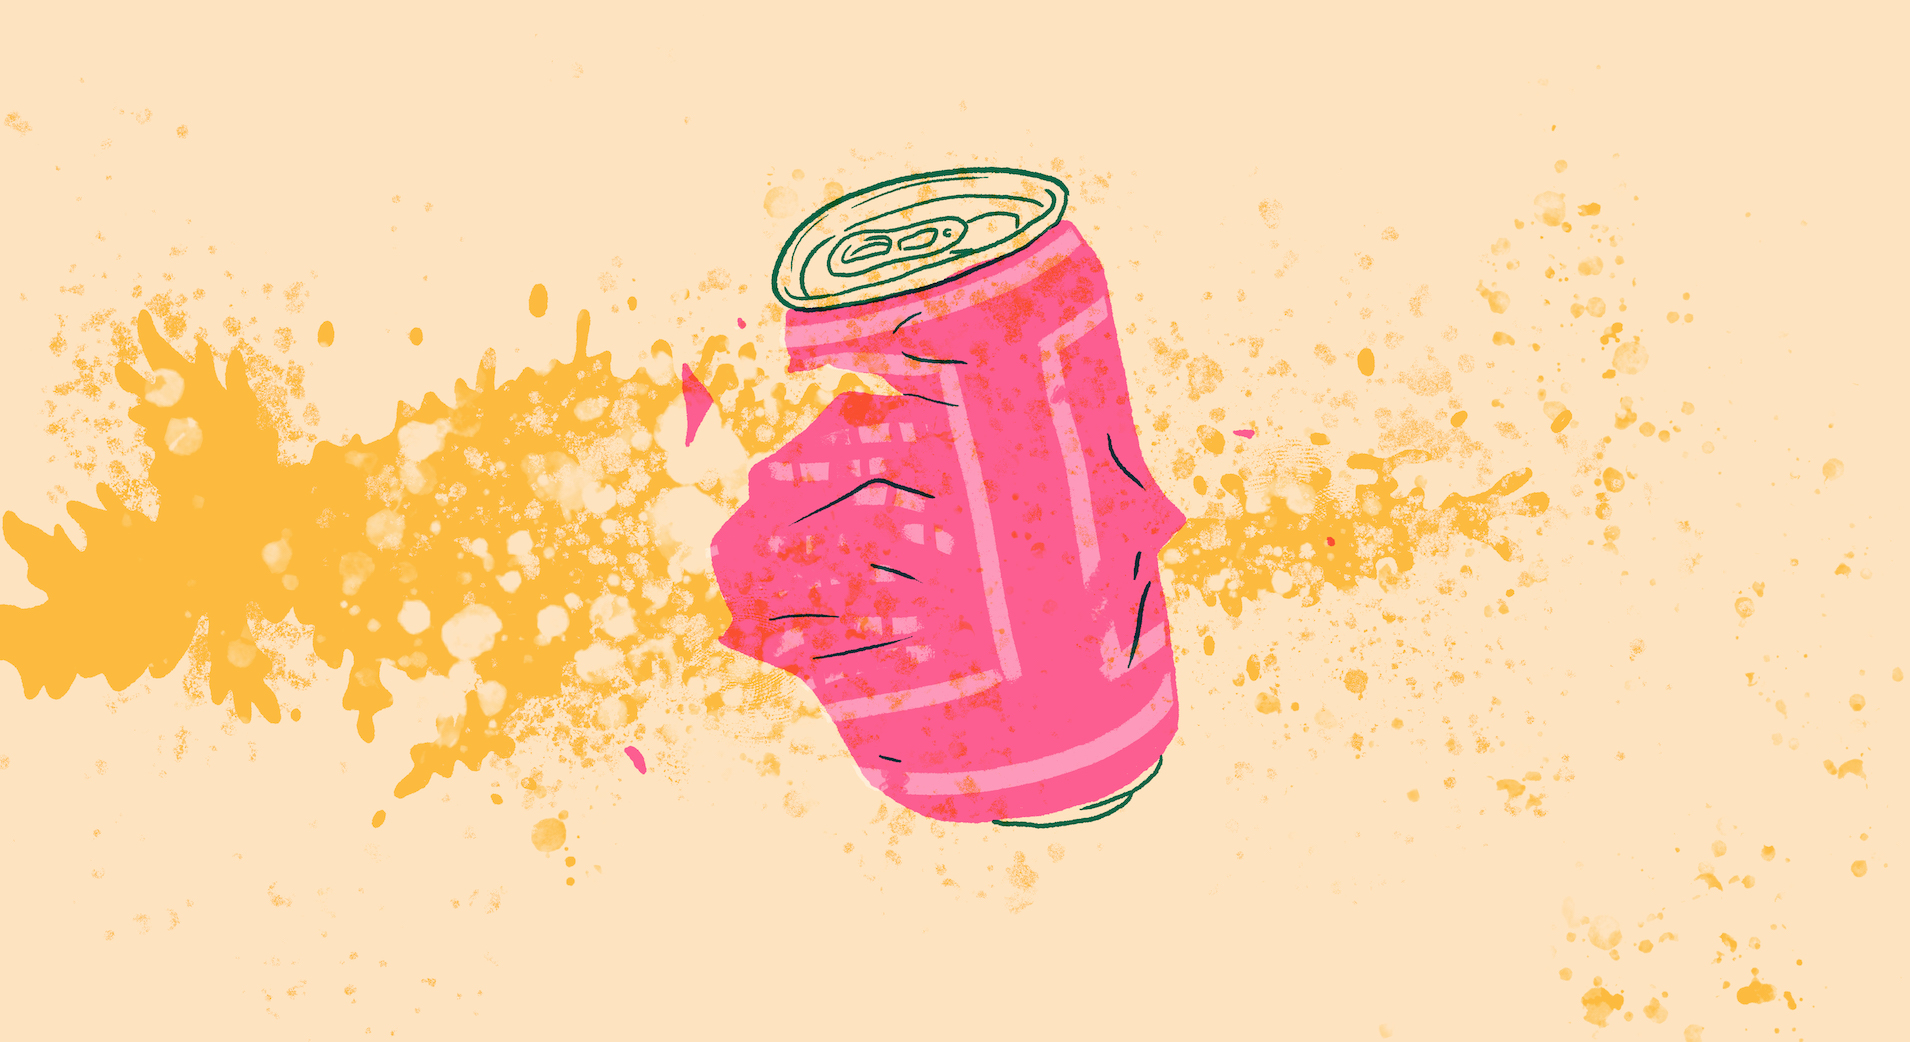 This Is Why Beer Cans Explode